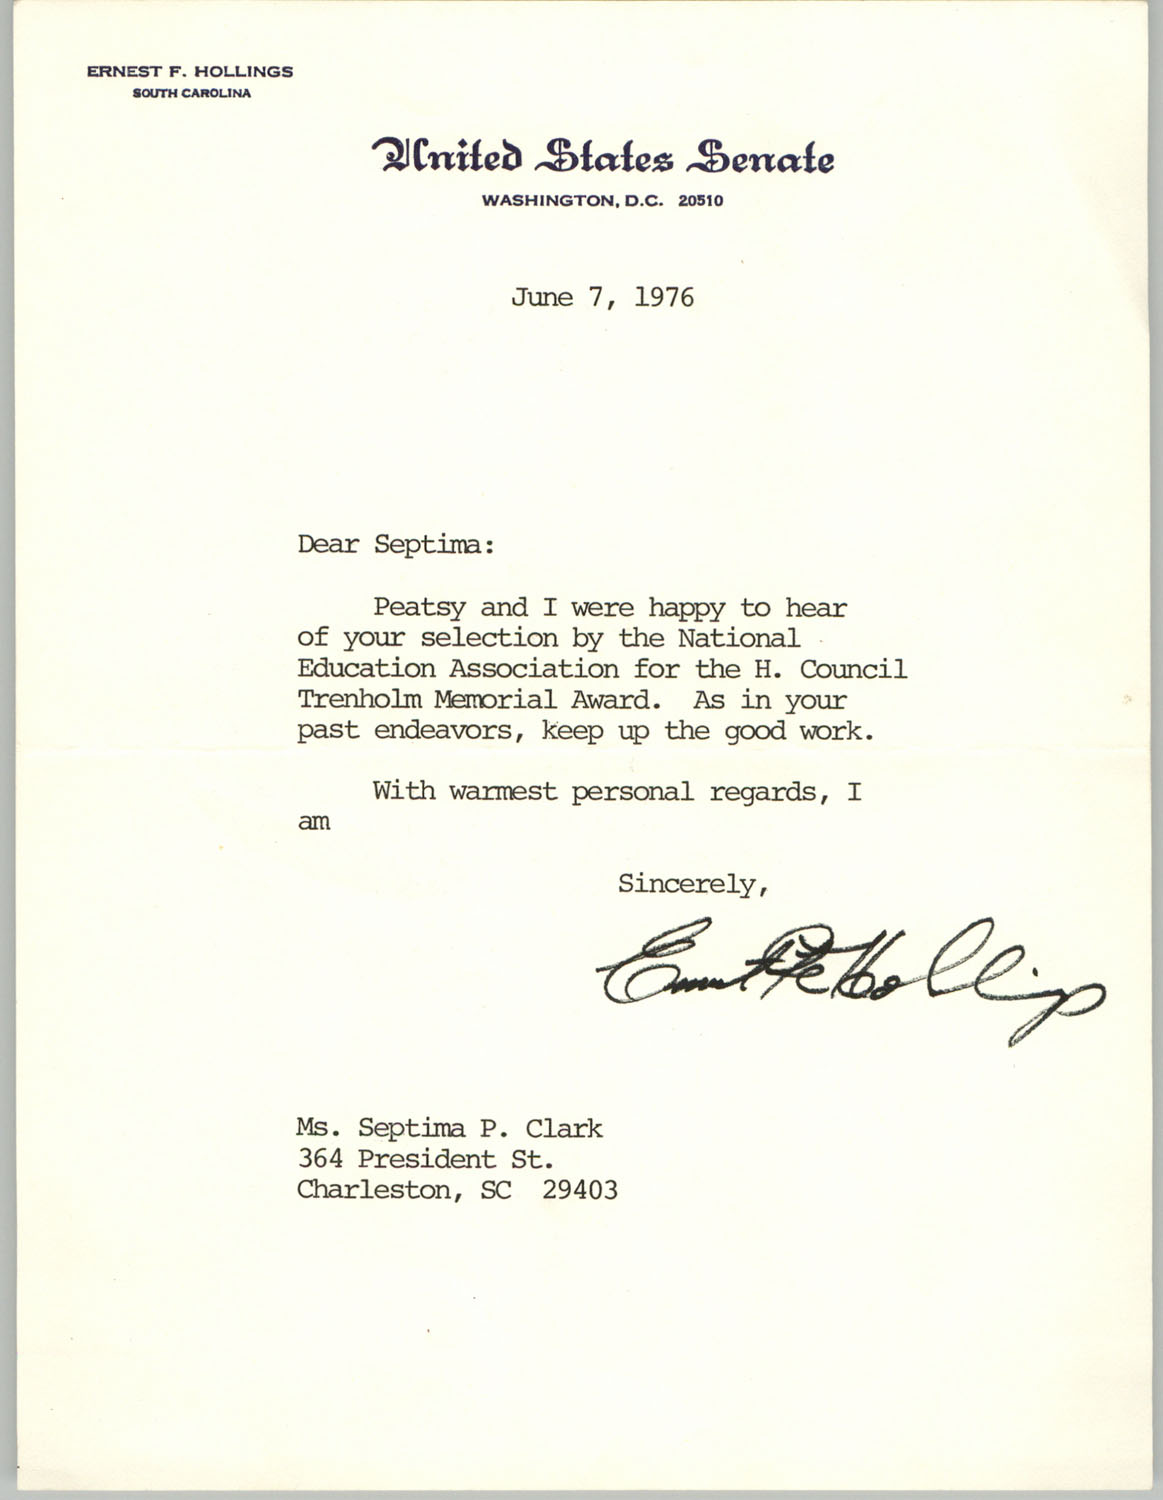 Letter from Ernest F. Hollings to Septima Clark, June 7, 1976